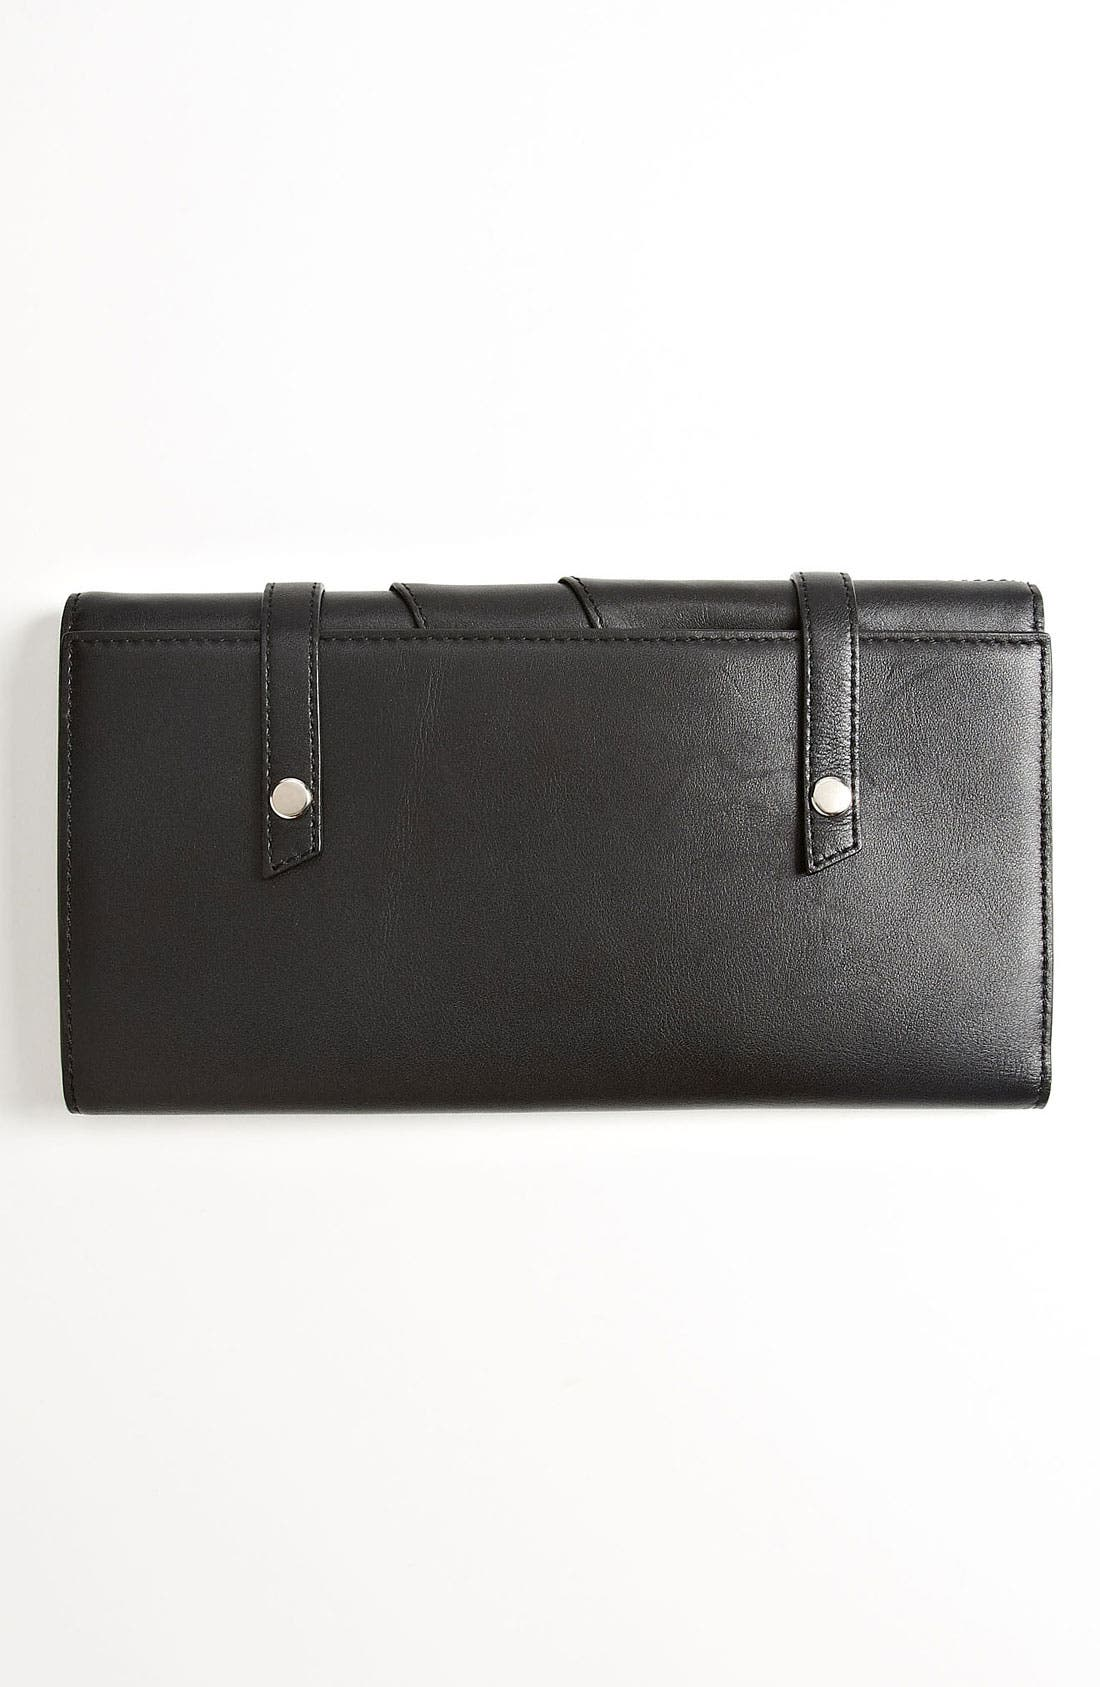 Alternate Image 1 Selected - WANT Les Essentiels de la Vie 'Manley' Tri-Fold Wallet